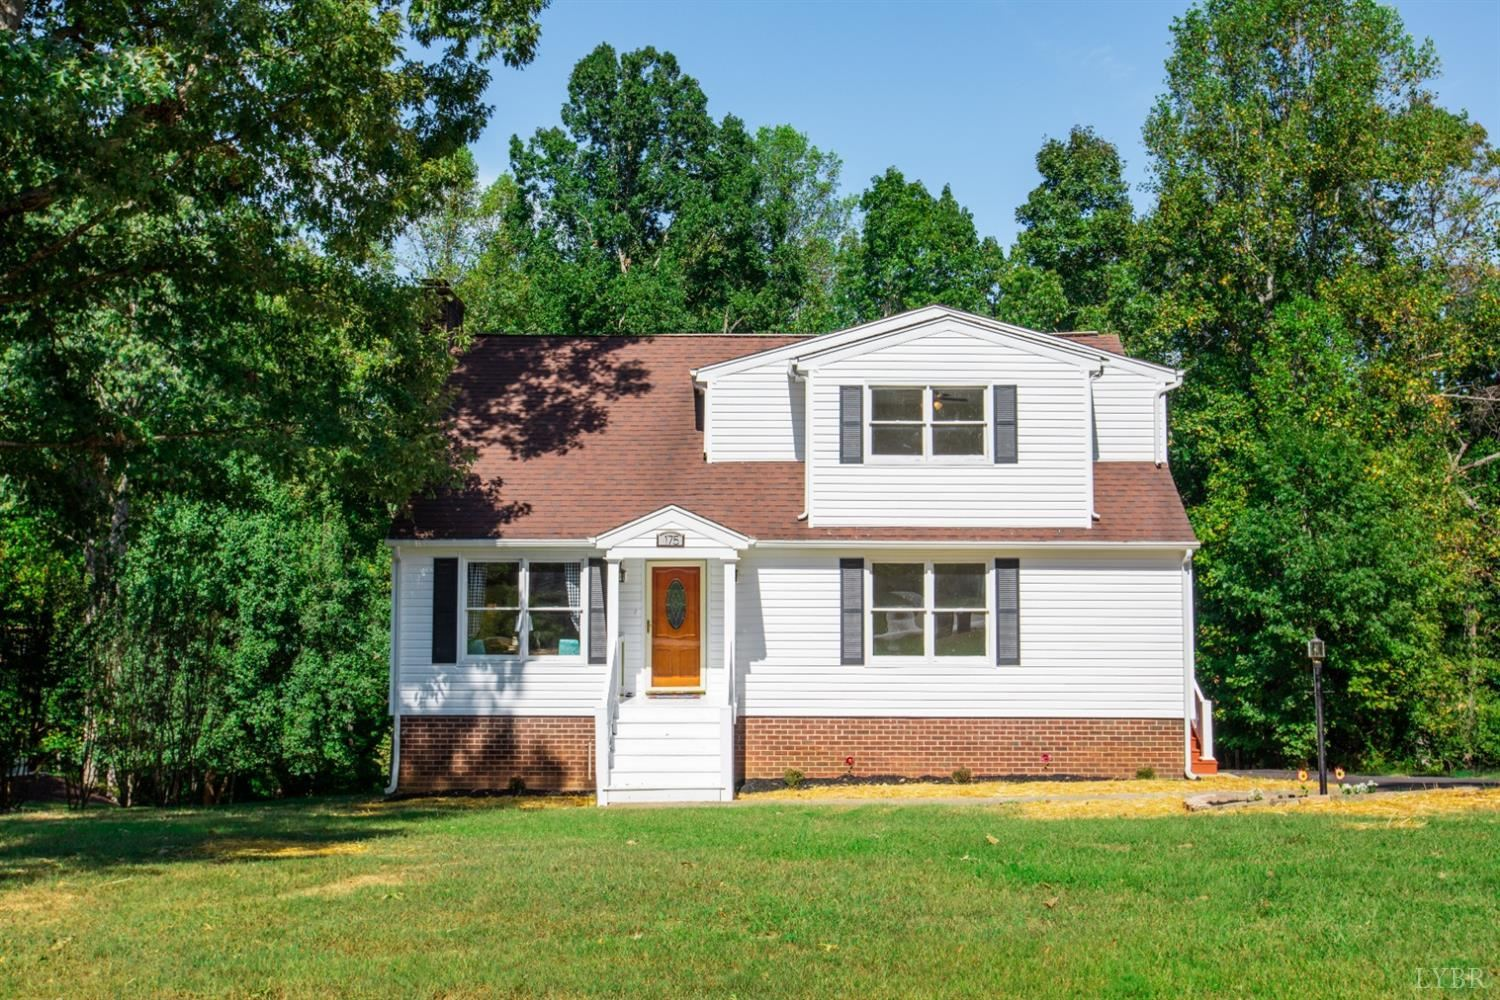 175 Goldfinch Drive, Lynchburg, VA 24502 - MLS#: 320962